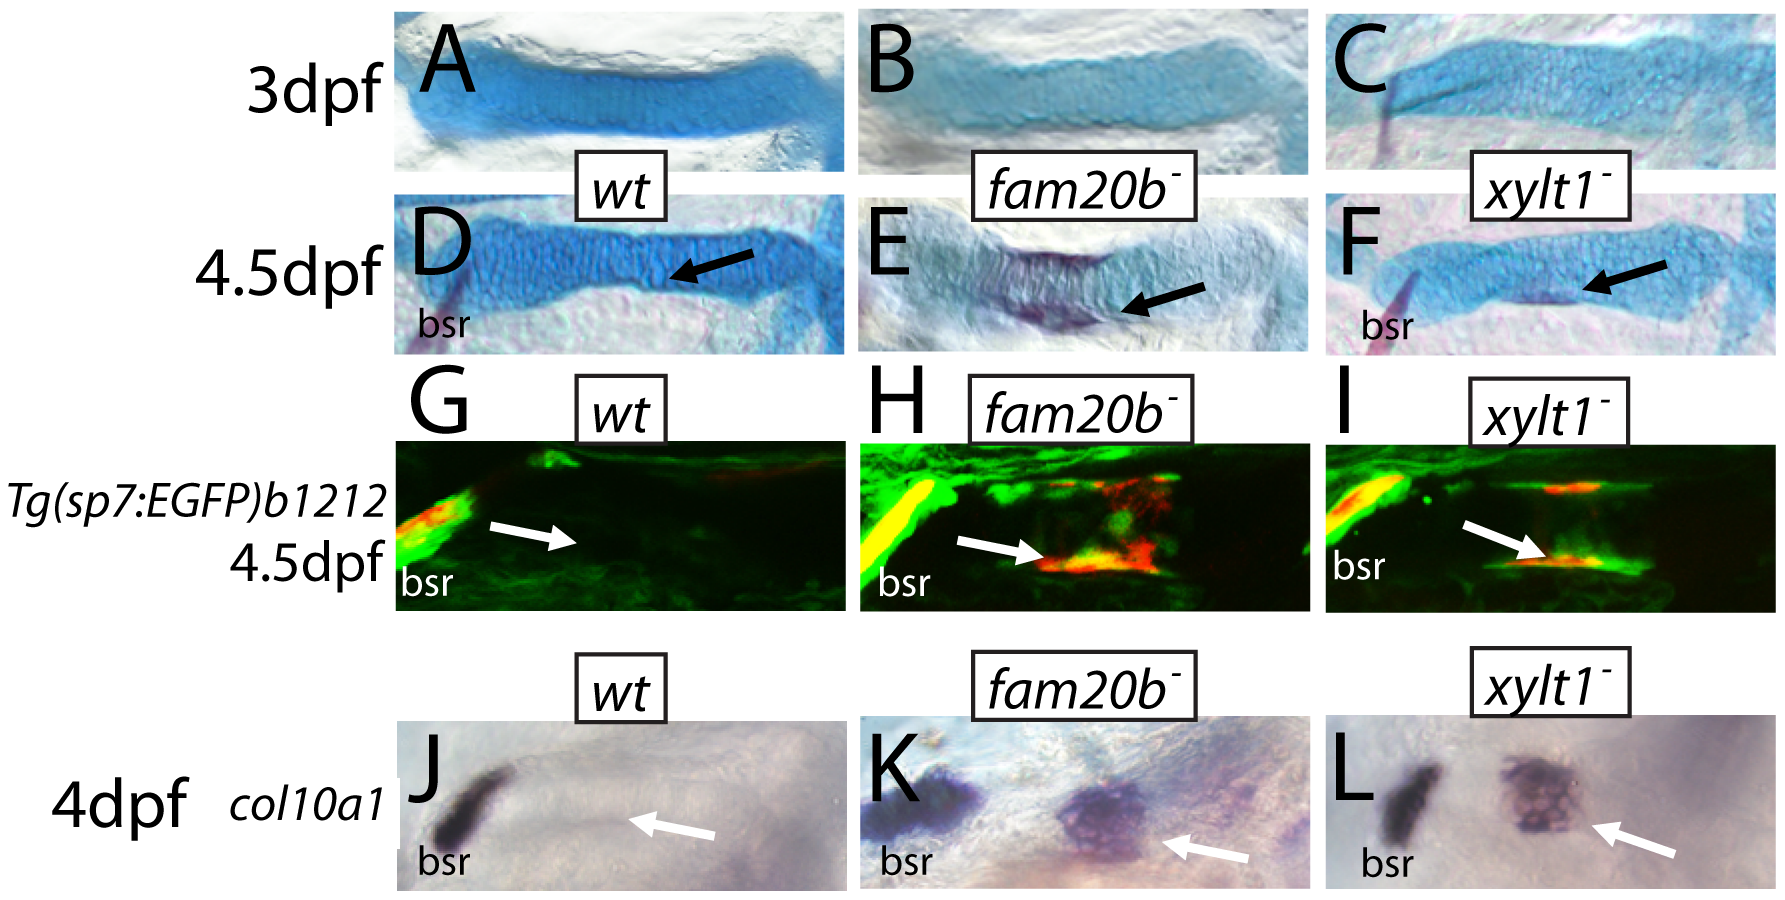 Precocious bone formation and osteoblast differentiation in perichondria of <i>fam20b</i> and <i>xylt1</i> mutants.